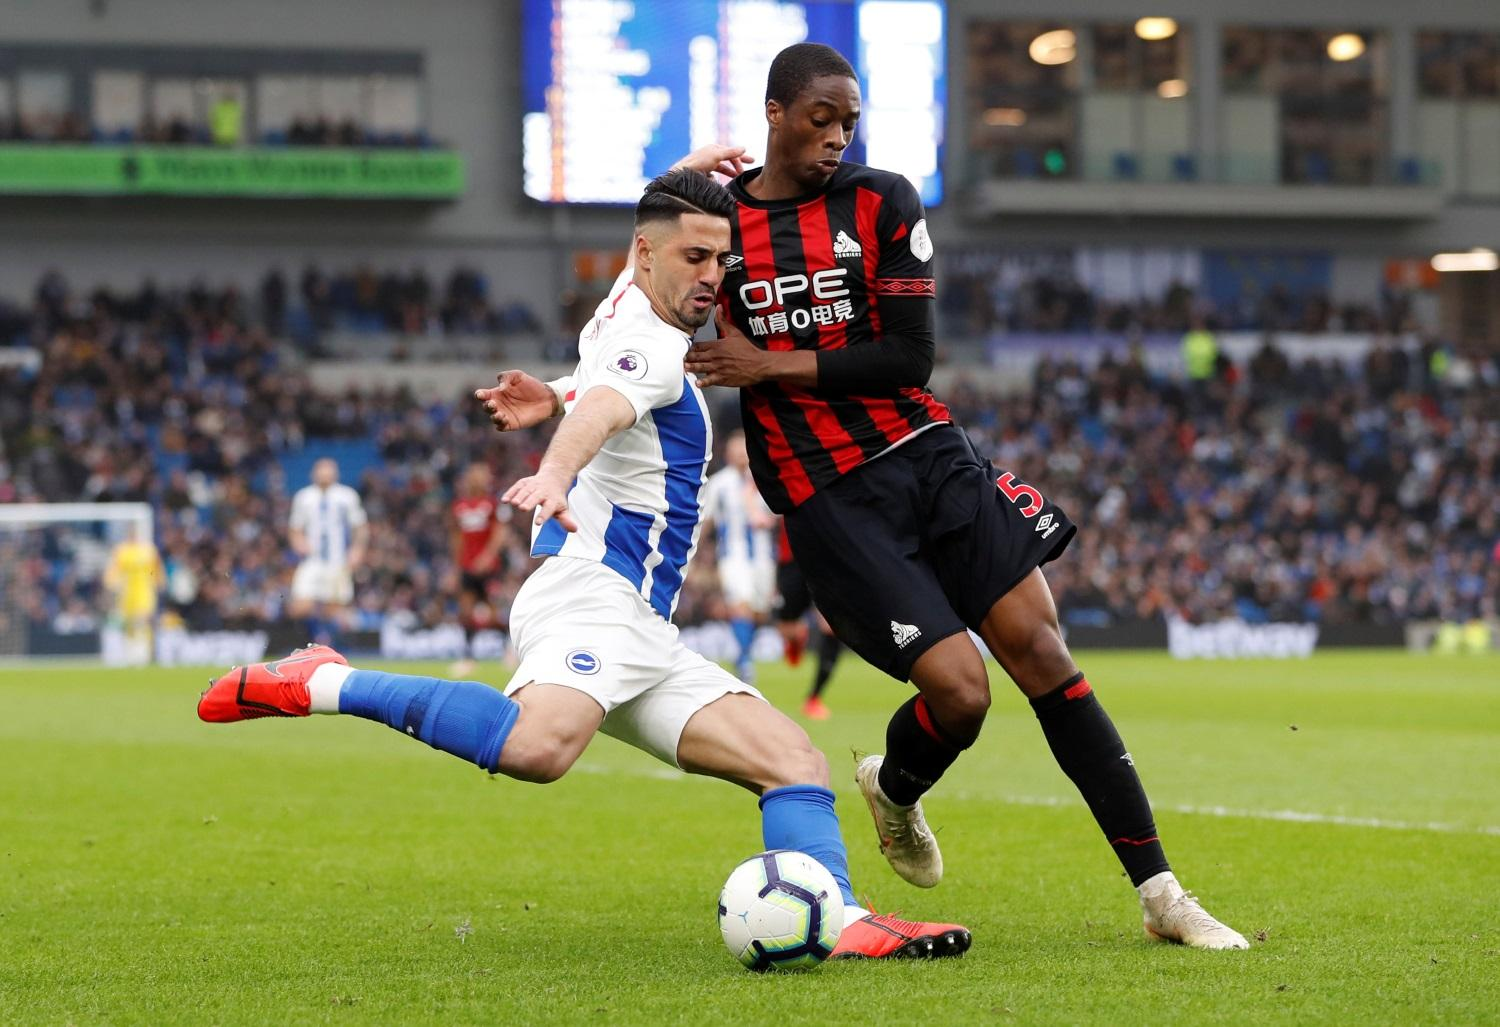 Kongolo Vows To Learn From Costly Error